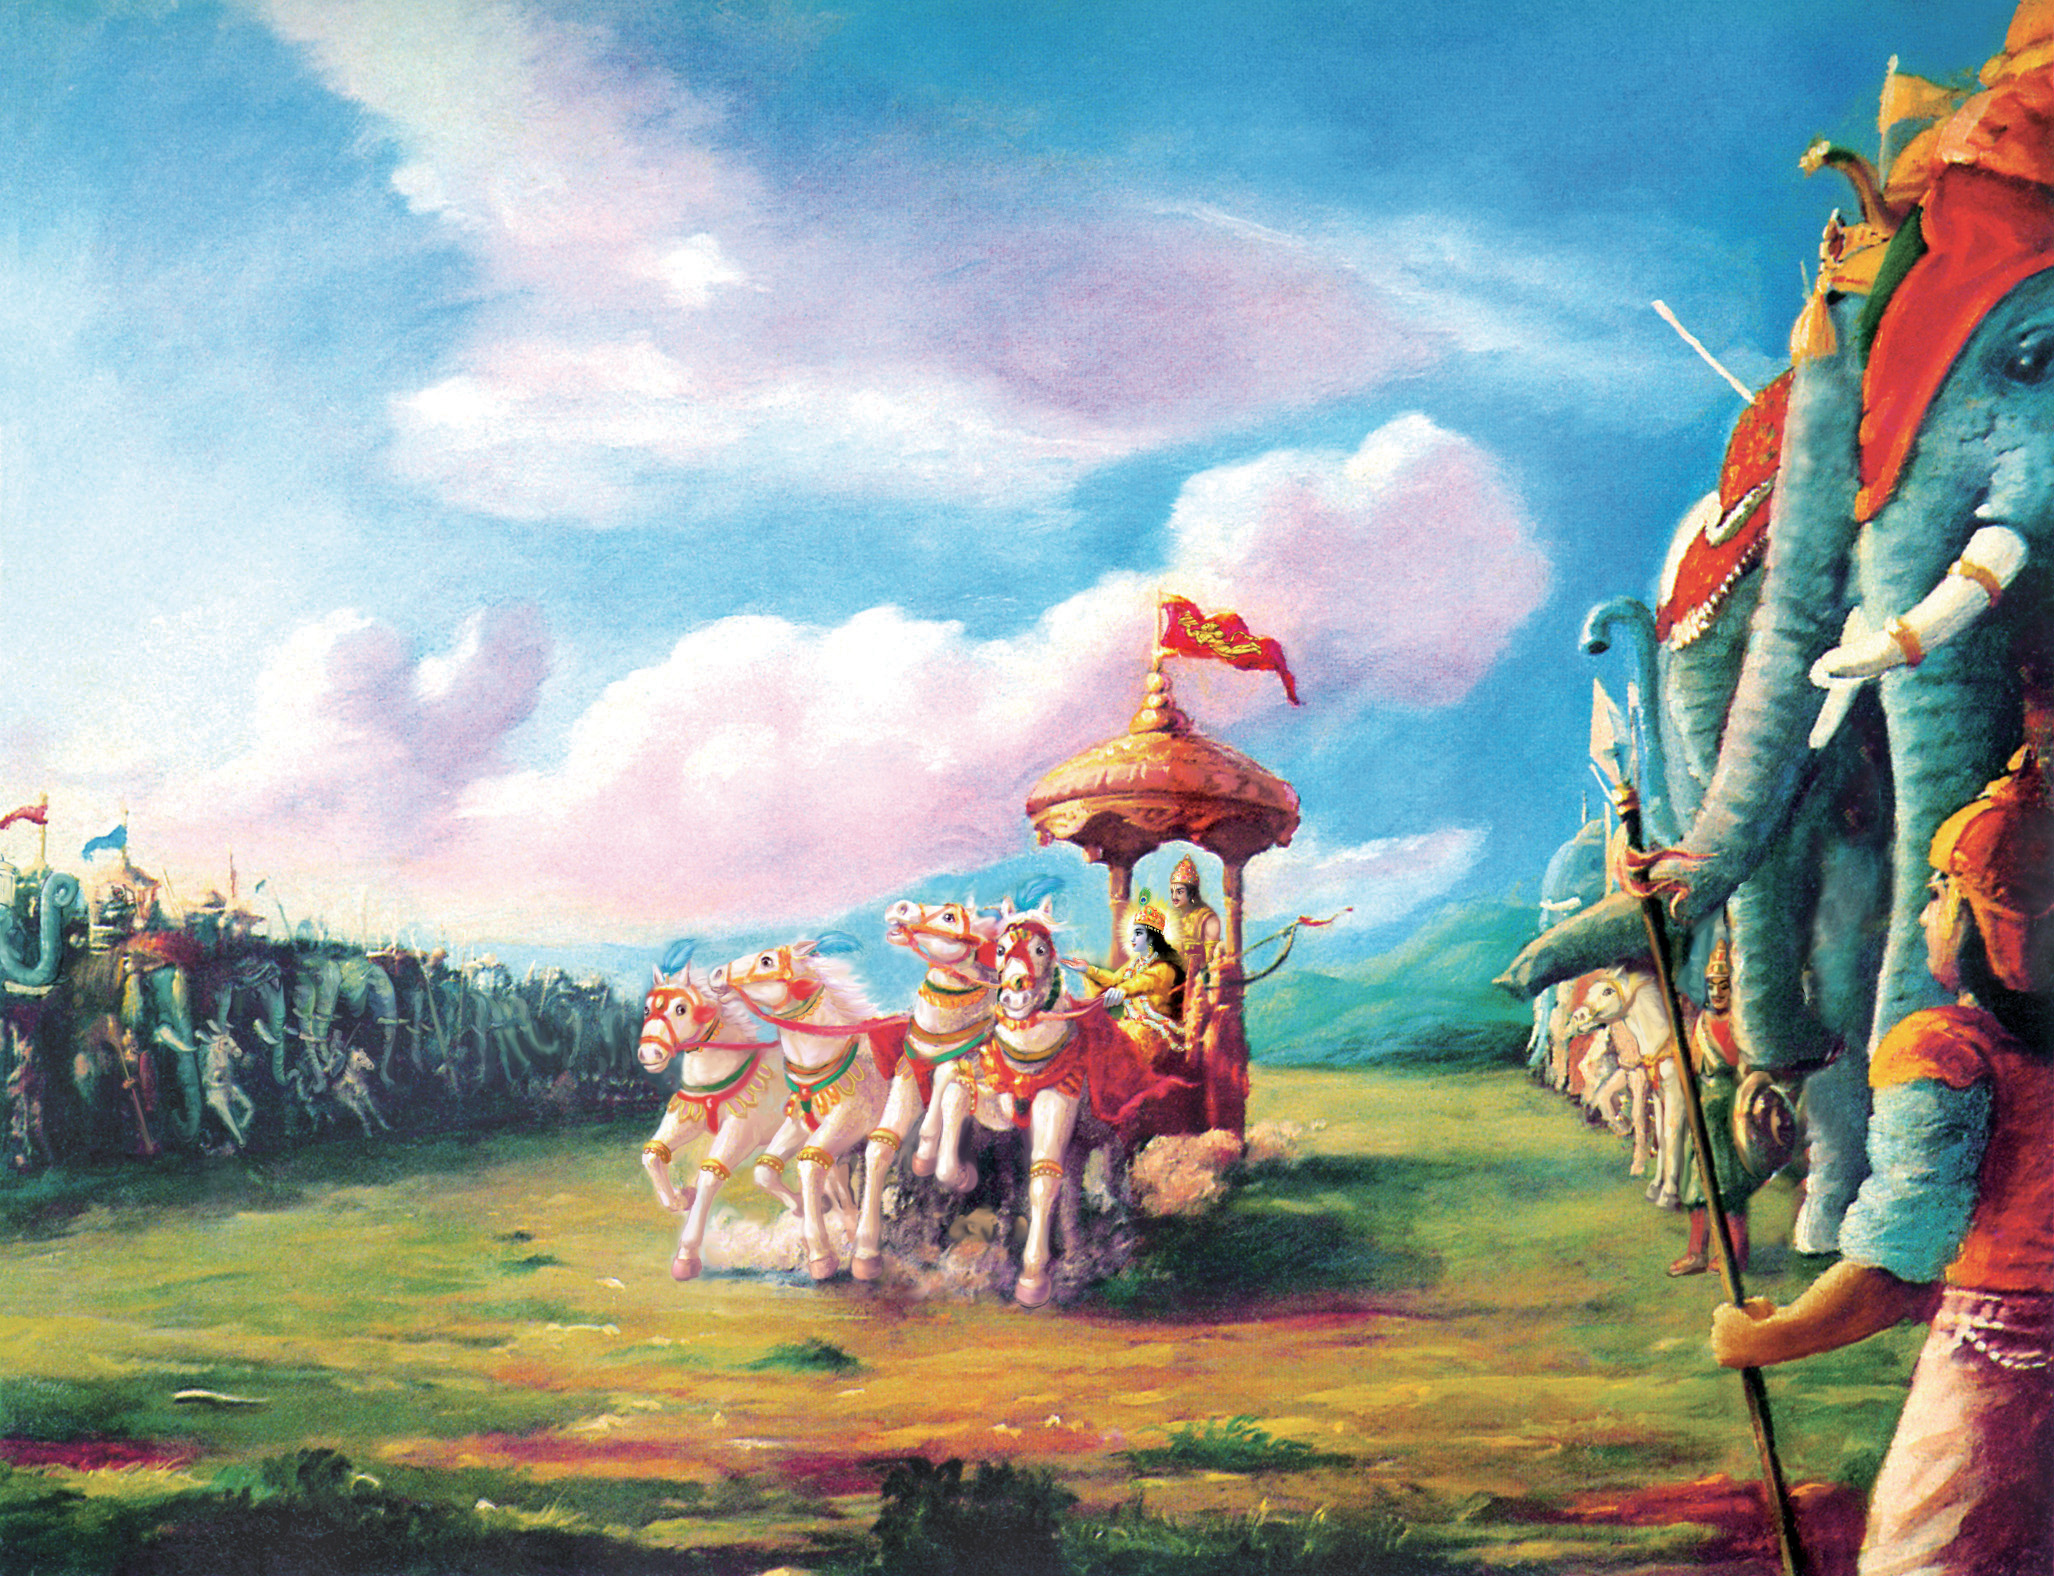 bhagavath geetha wallpapers - photo #16